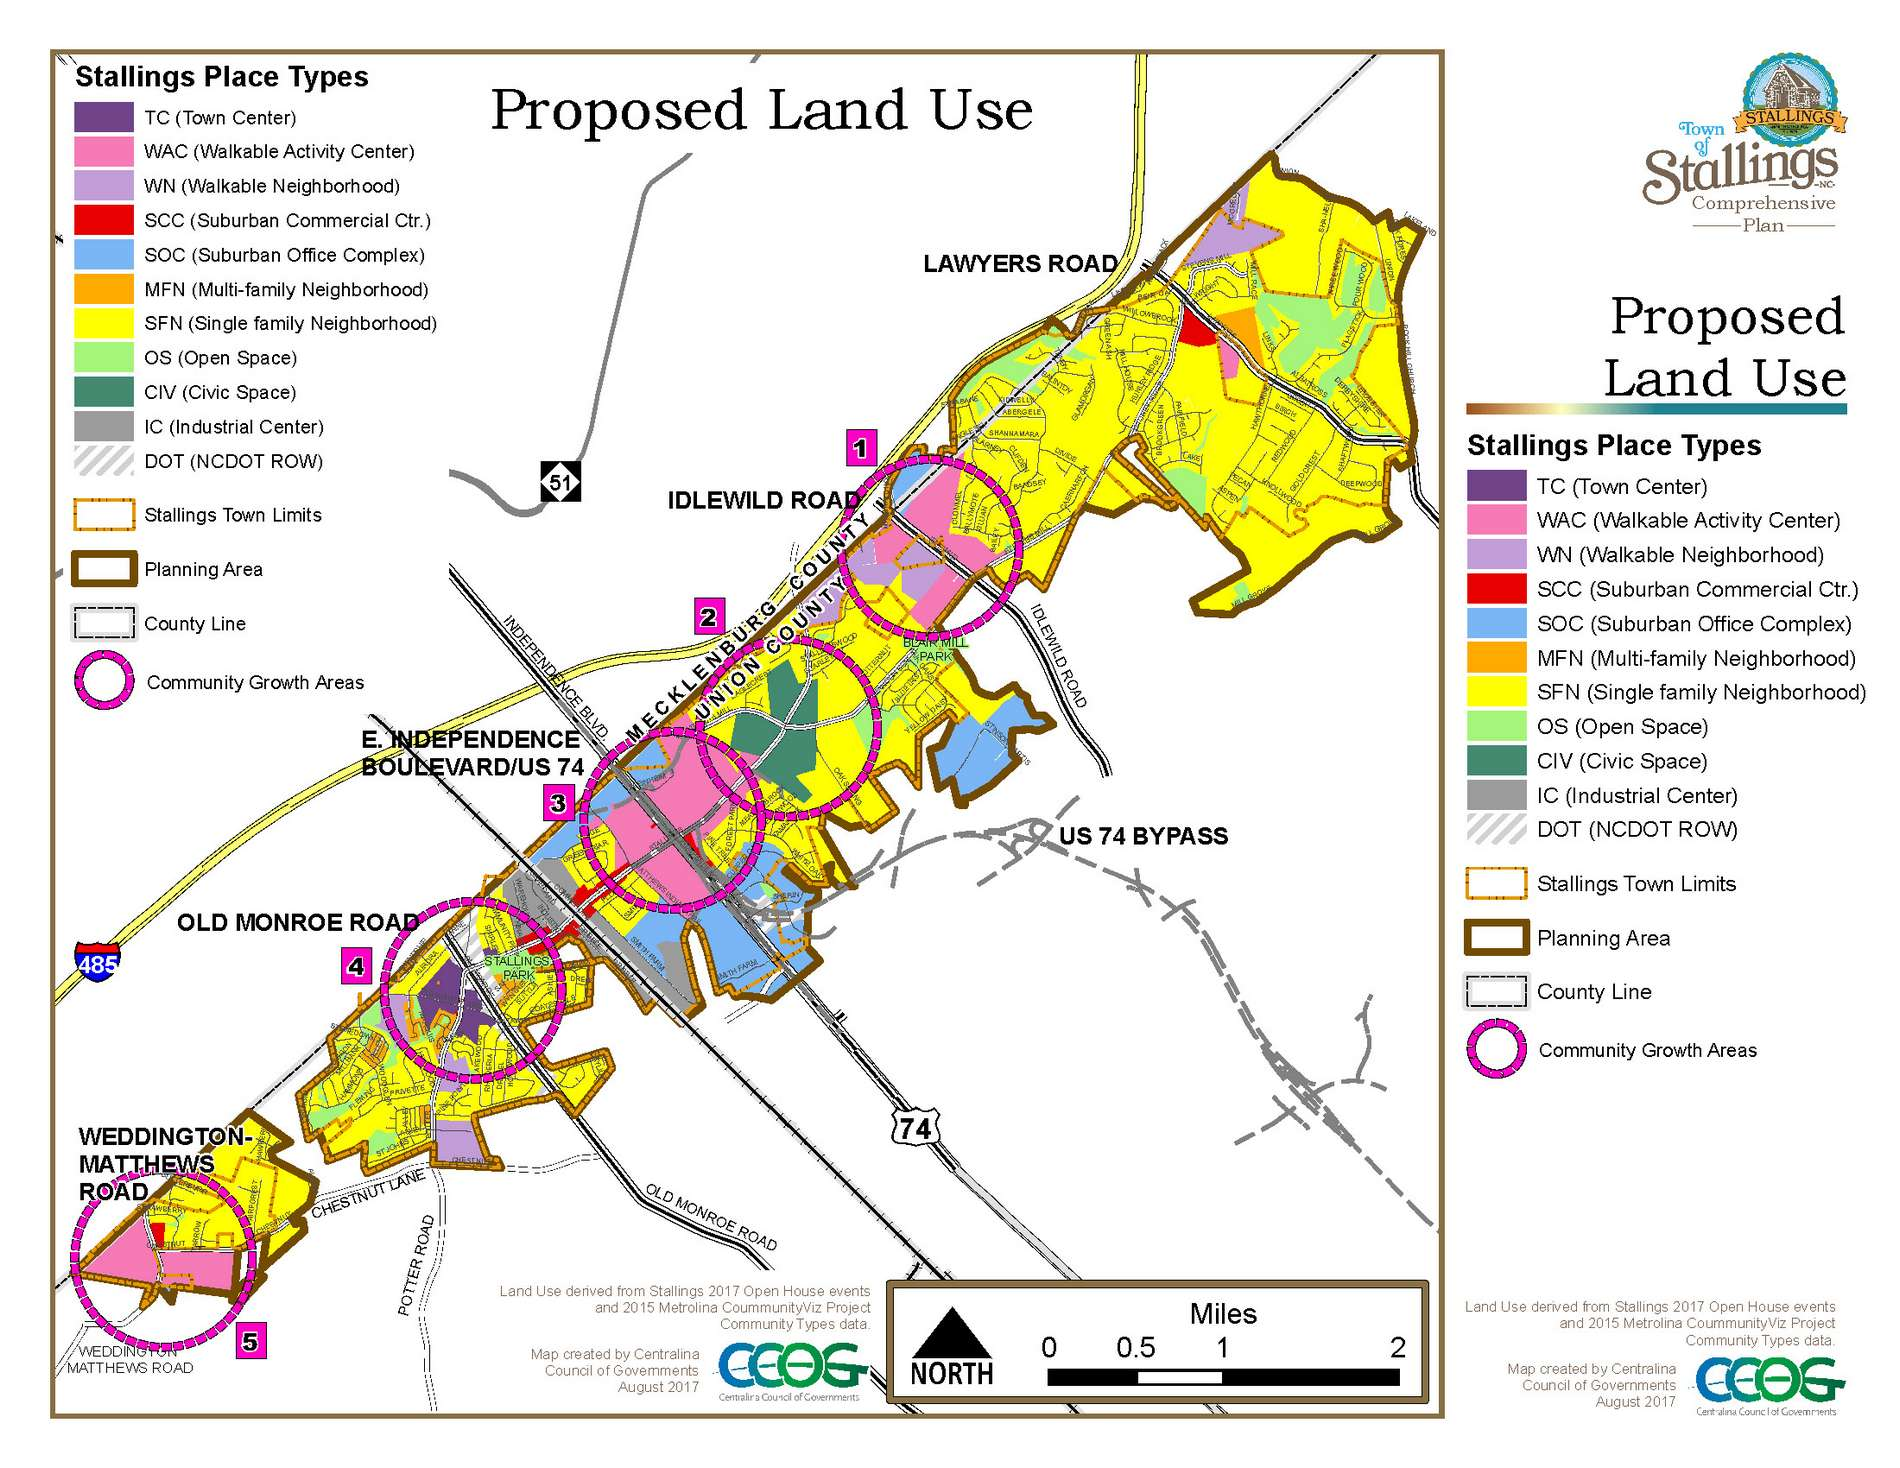 Future Land Use Map - Stallings Plans